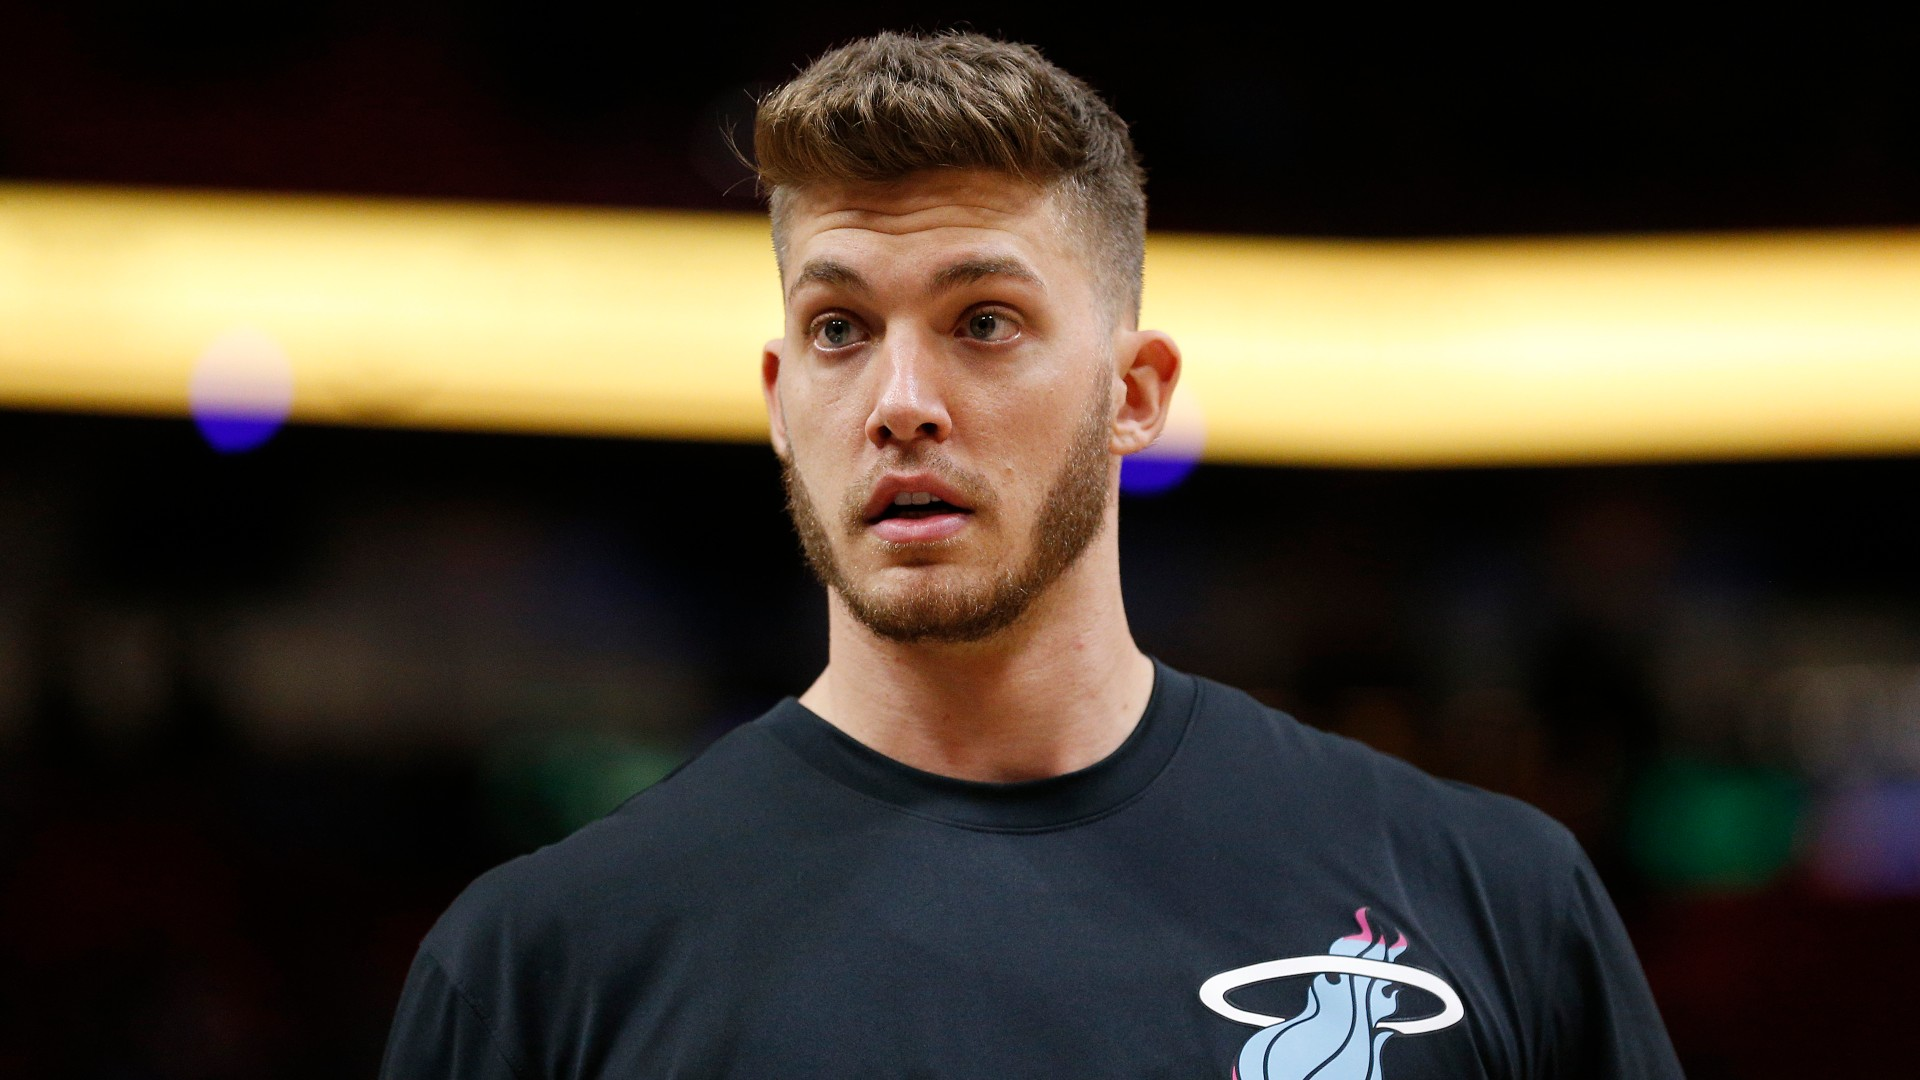 Meyers Leonard video controversy, explained: Heat center apologizes after using anti-Semitic slur on Twitch stream